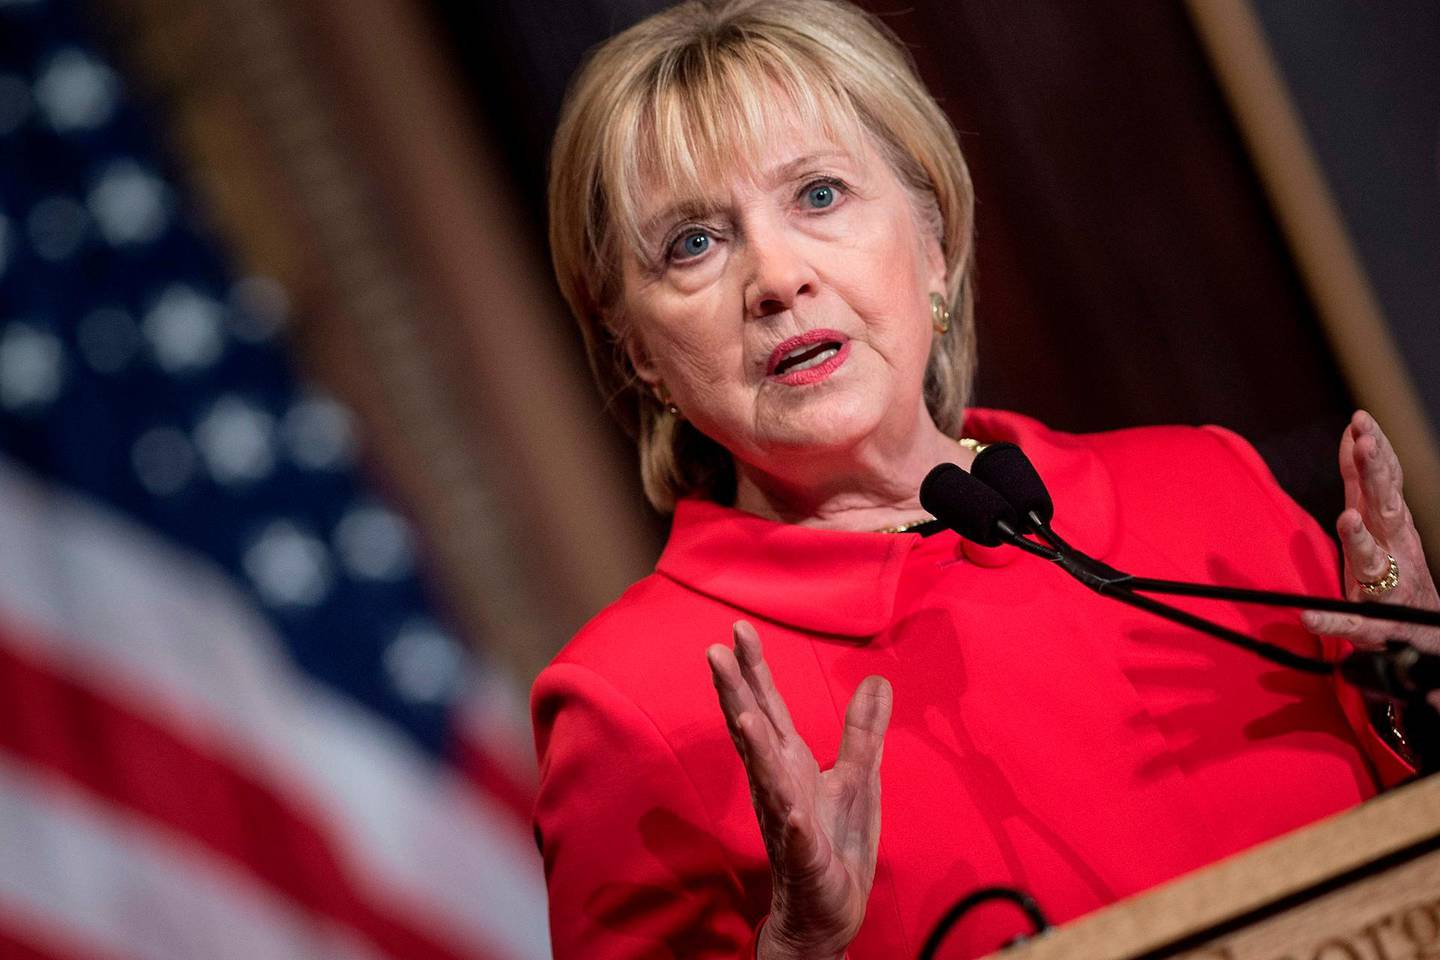 """(FILES) In this file photo taken on March 31, 2017 former US Secretary of State Hillary Clinton speaks during an awards ceremony for the Georgetown Institute for Women at Georgetown University on March 31, 2017 in Washington, DC. Hillary Clinton has for the first time ruled out running for president in 2020. """"I'm not running, but I'm going to keep on working and speaking and standing up for what I believe,"""" Clinton said March 4, 2019, in an interview with News 12, a local TV channel in New York. Clinton was the frontrunner in 2016 but ended up losing to Donald Trump. / AFP / Brendan Smialowski"""